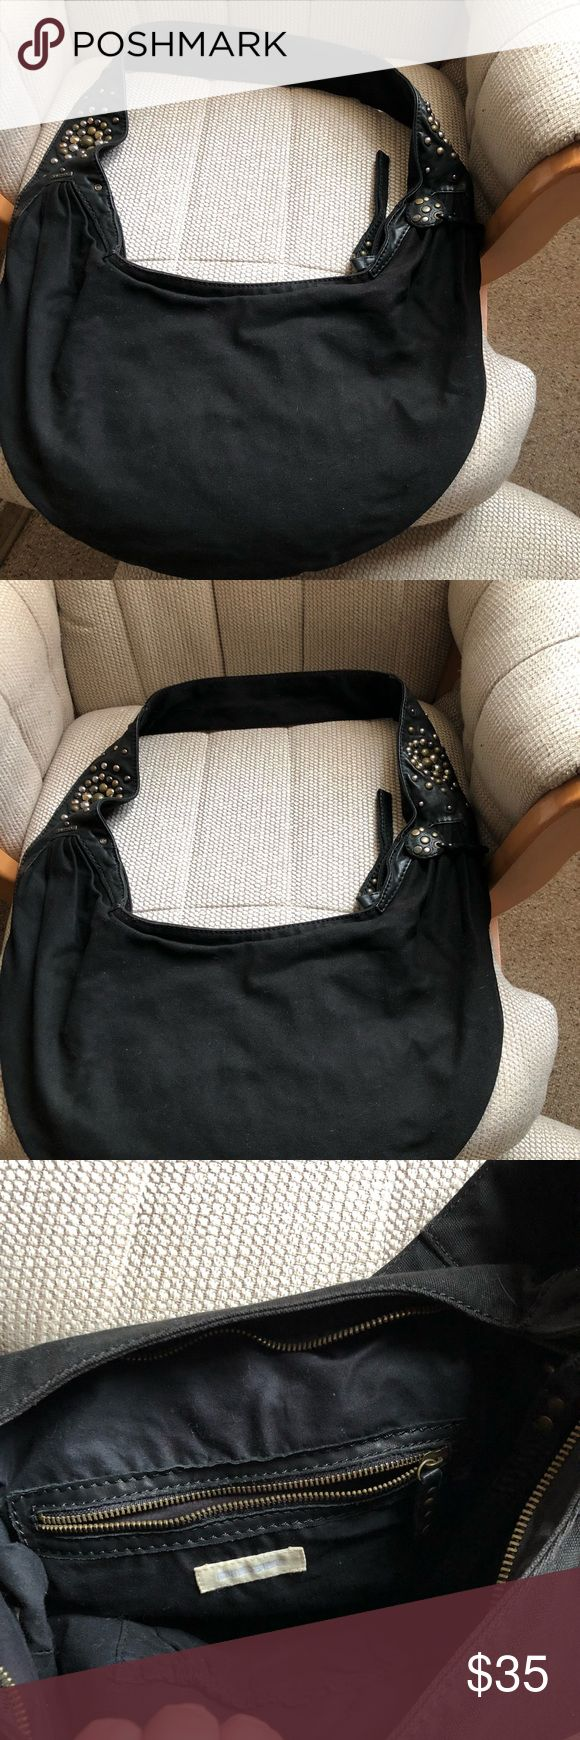 Diesel Cross Body Canvas Bag Light weight fashion diesel crossbody canvas bag.            Pre-Owned in Great Condition! Diesel Bags